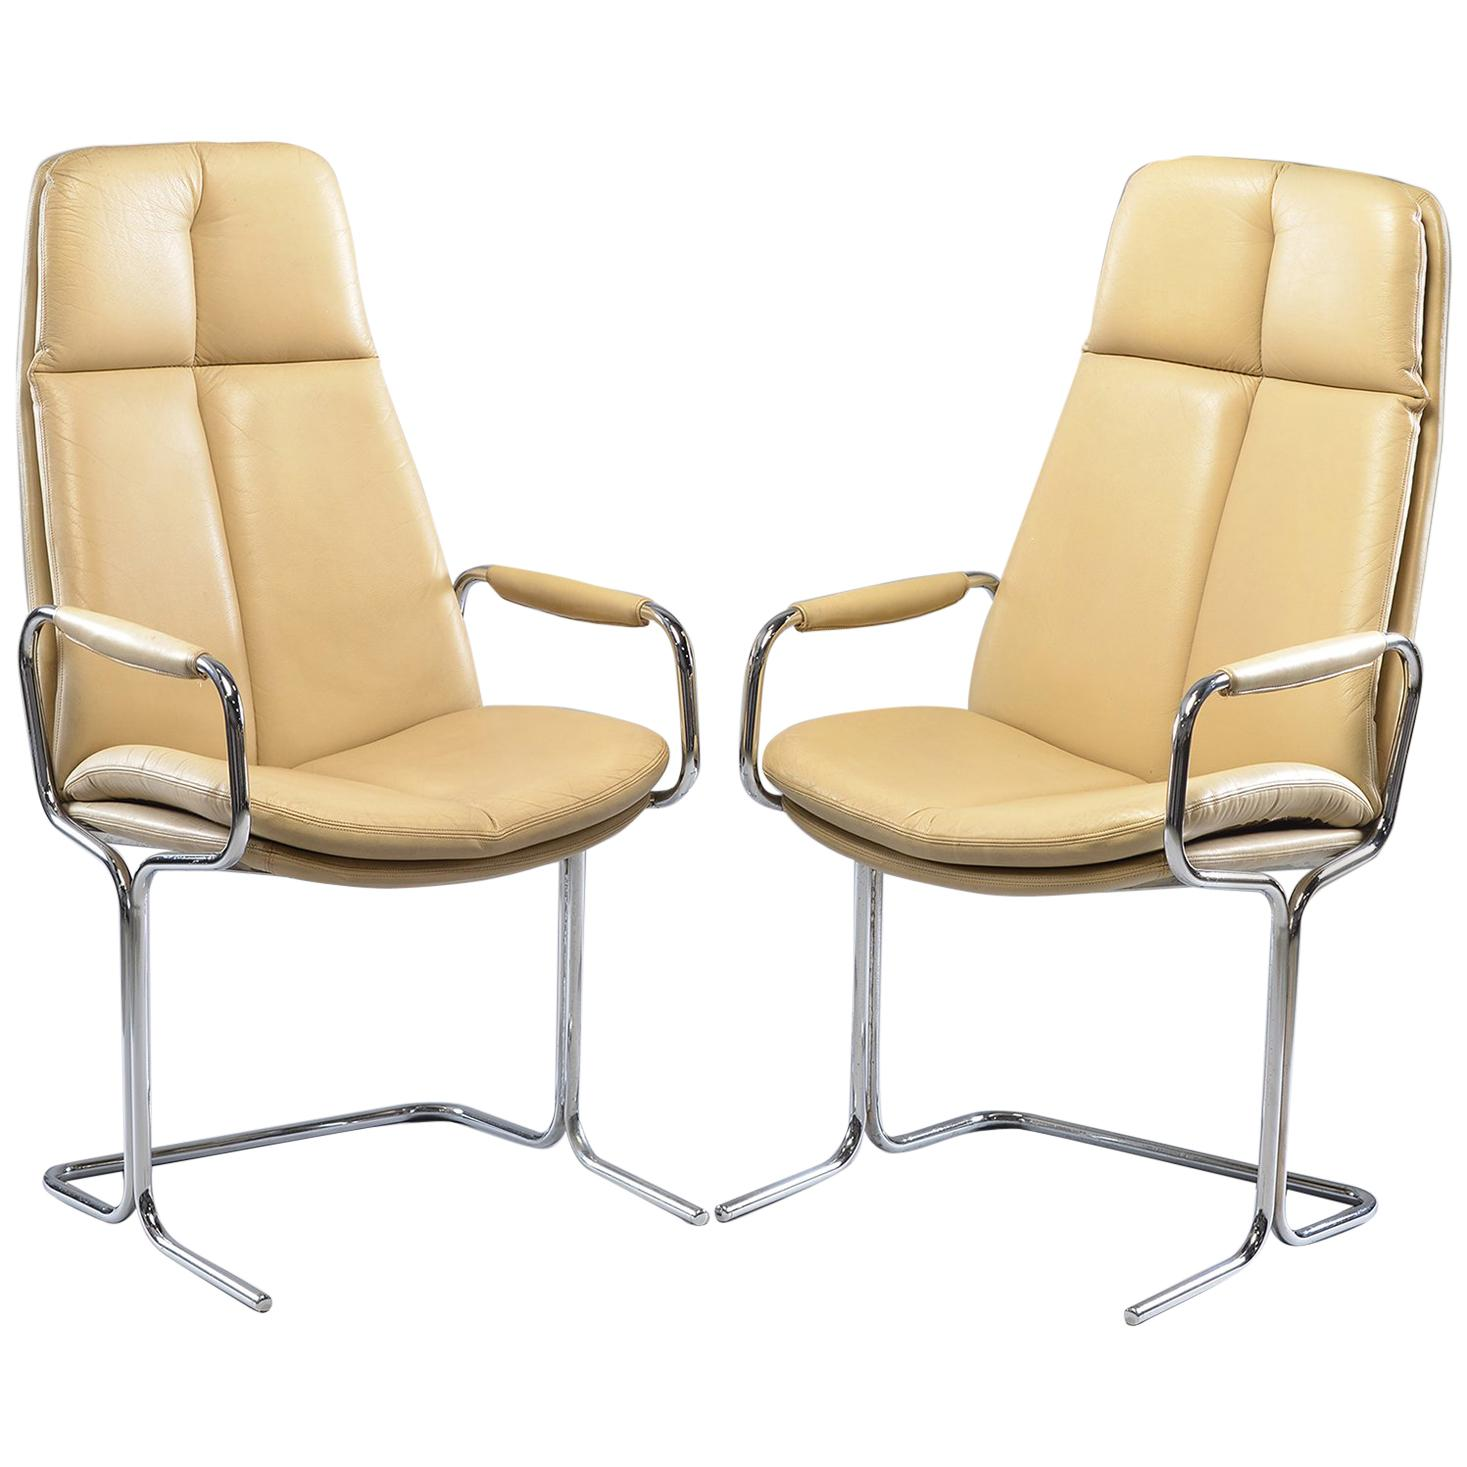 Pair of Armchairs by Tim Bates for Eleganza Collection at Pieff